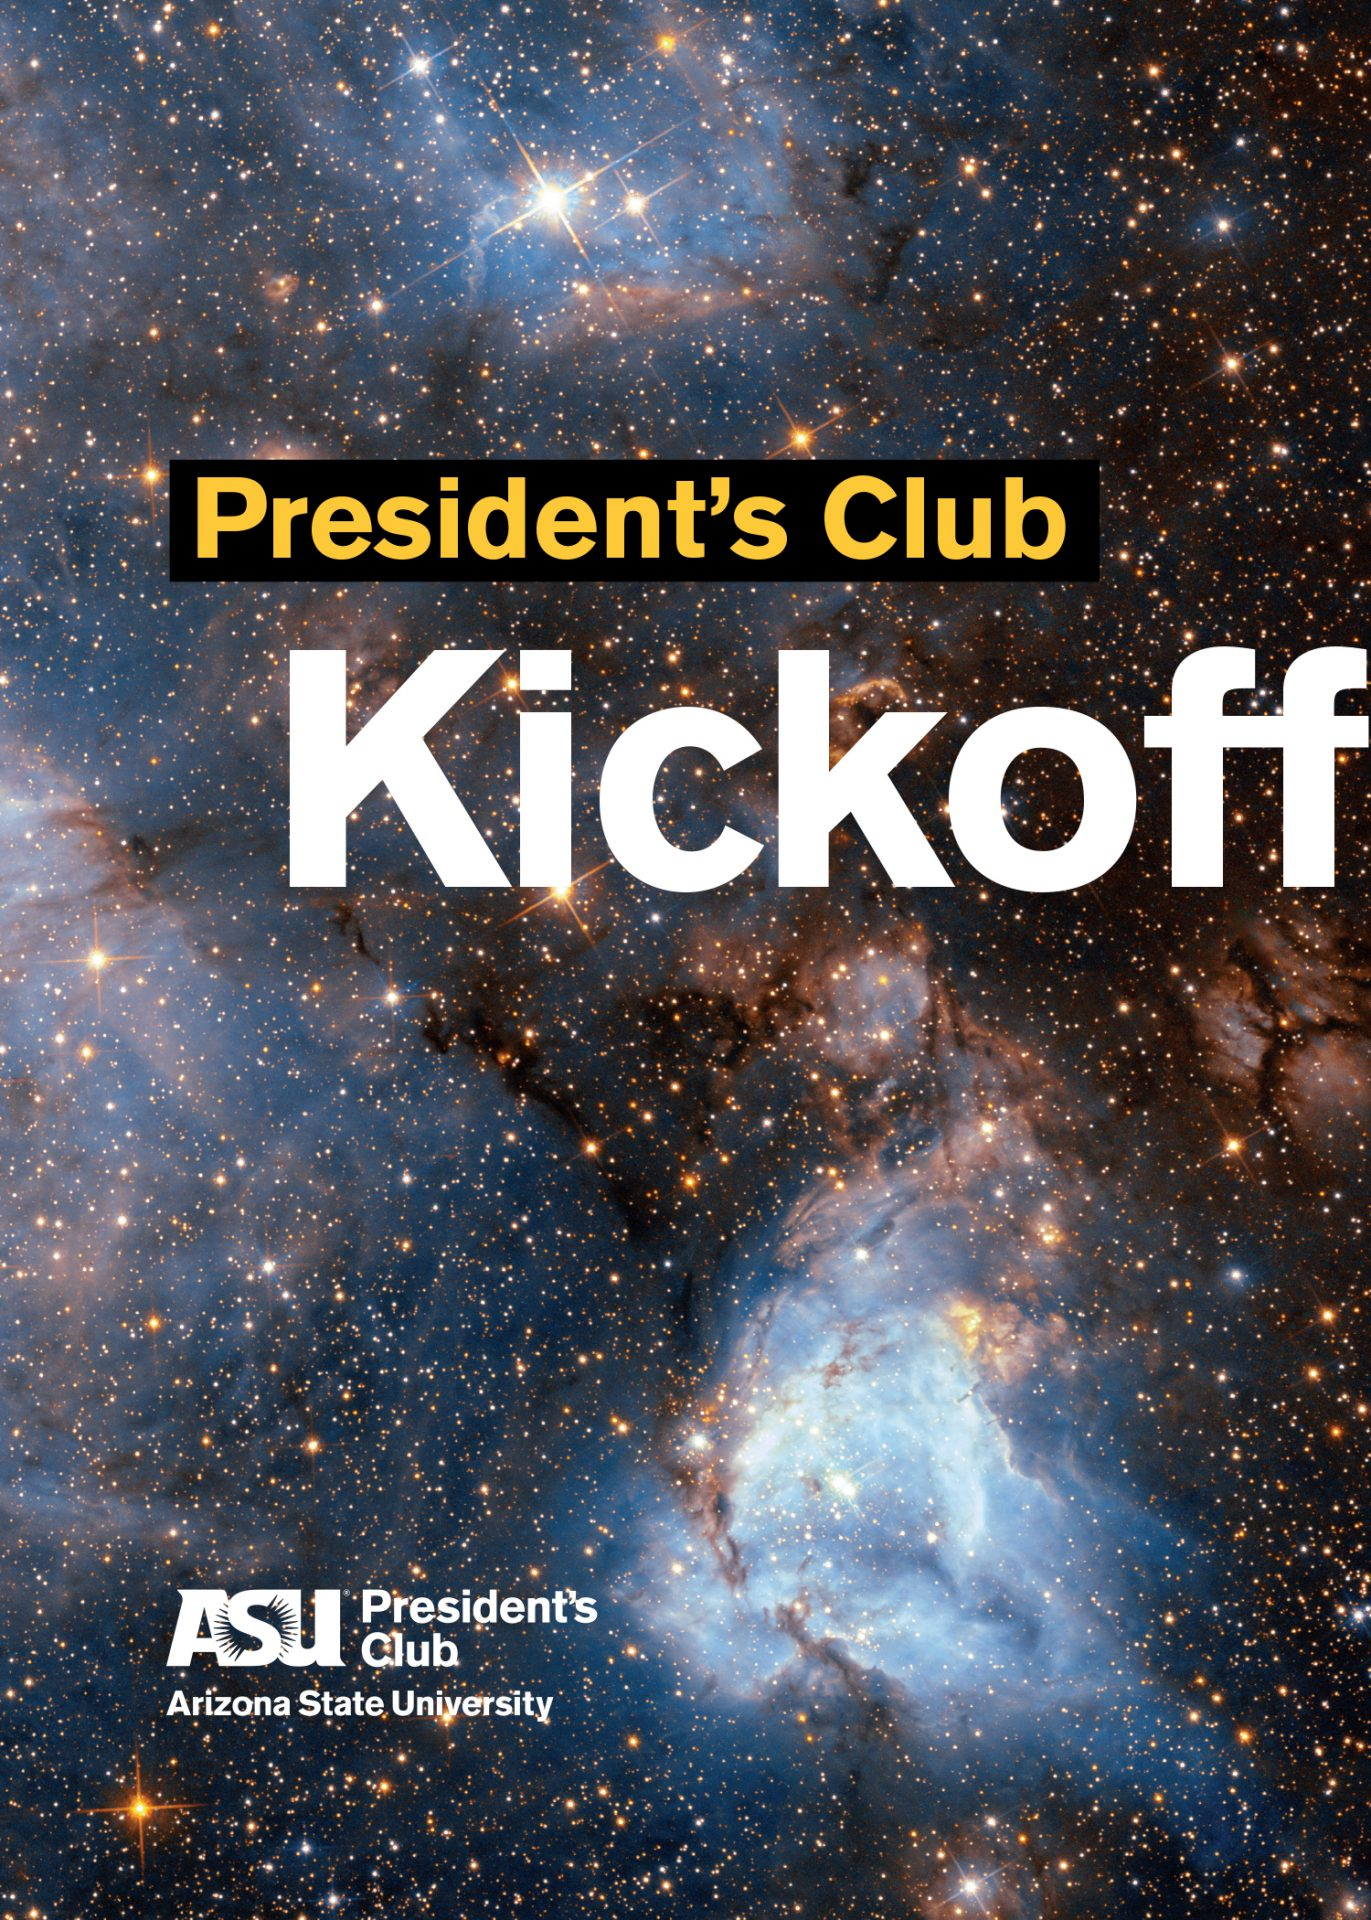 ASU-Presidents-Club-Season-Kickoff-Front